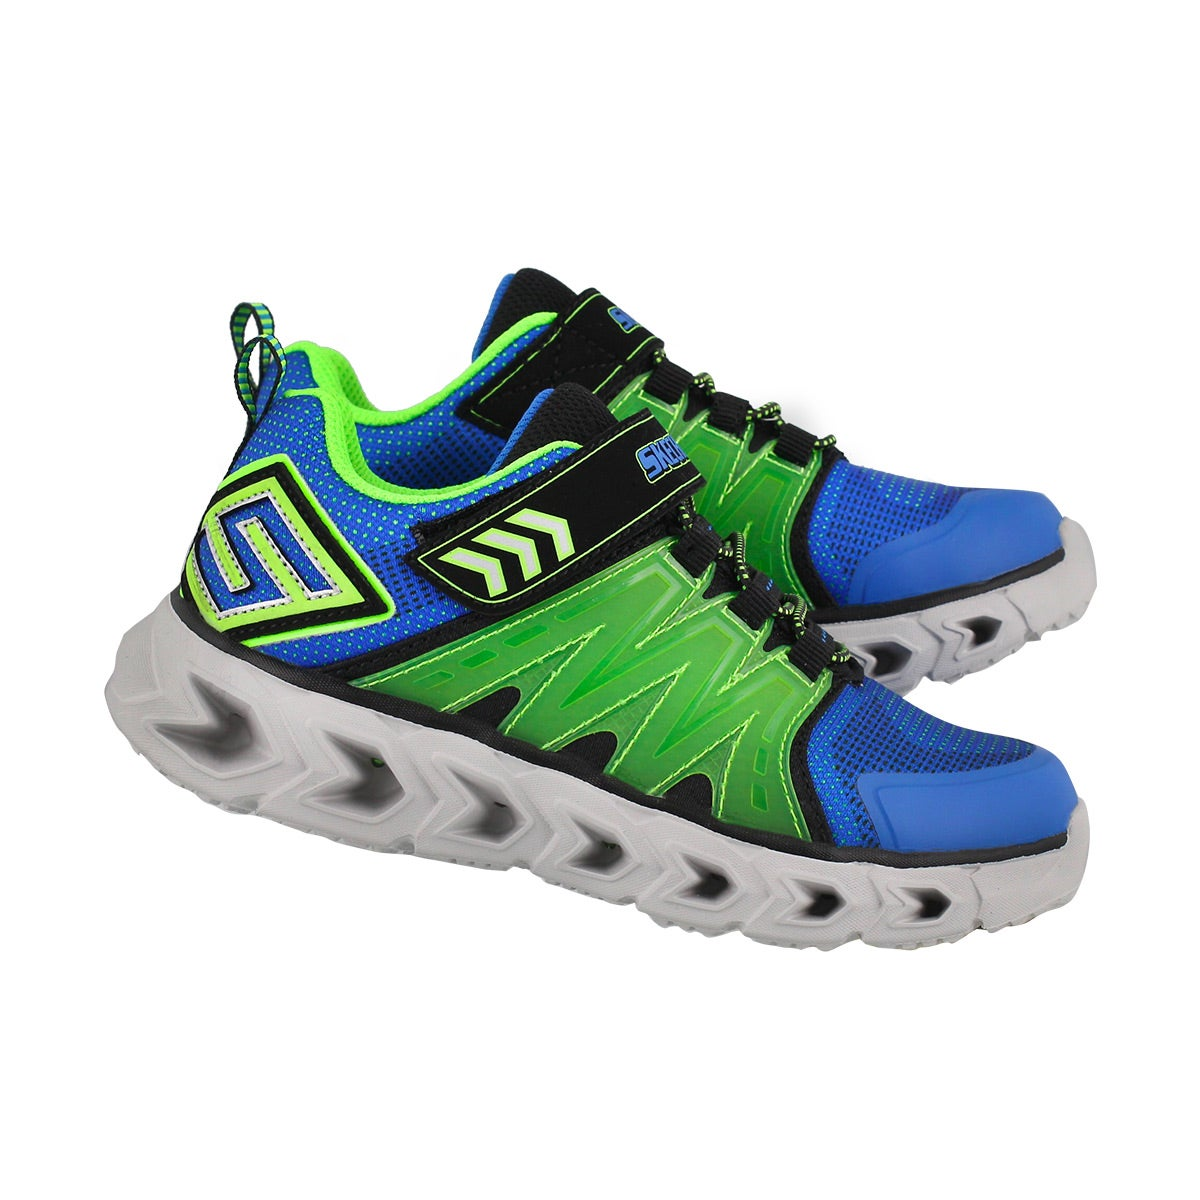 Bys HypnoFlash2.0 blu/grn light up snkr